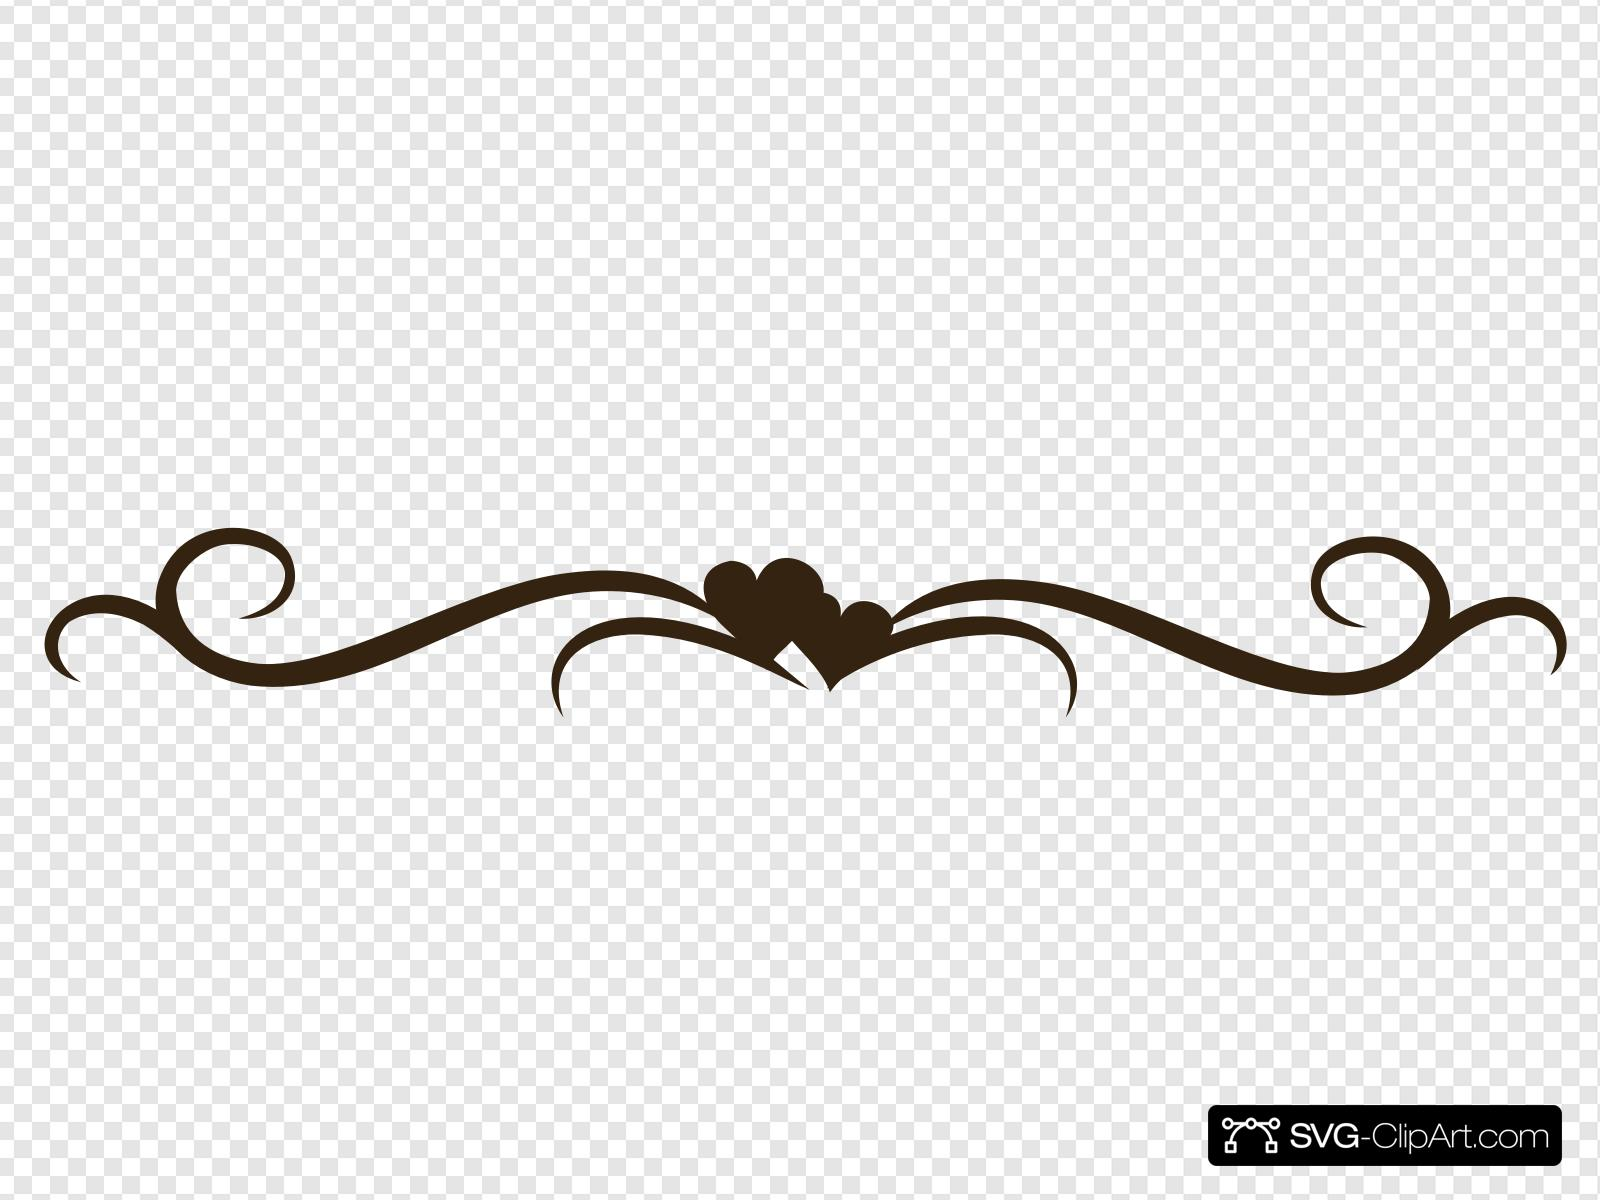 Brown Heart Swirl Clip art, Icon and SVG.